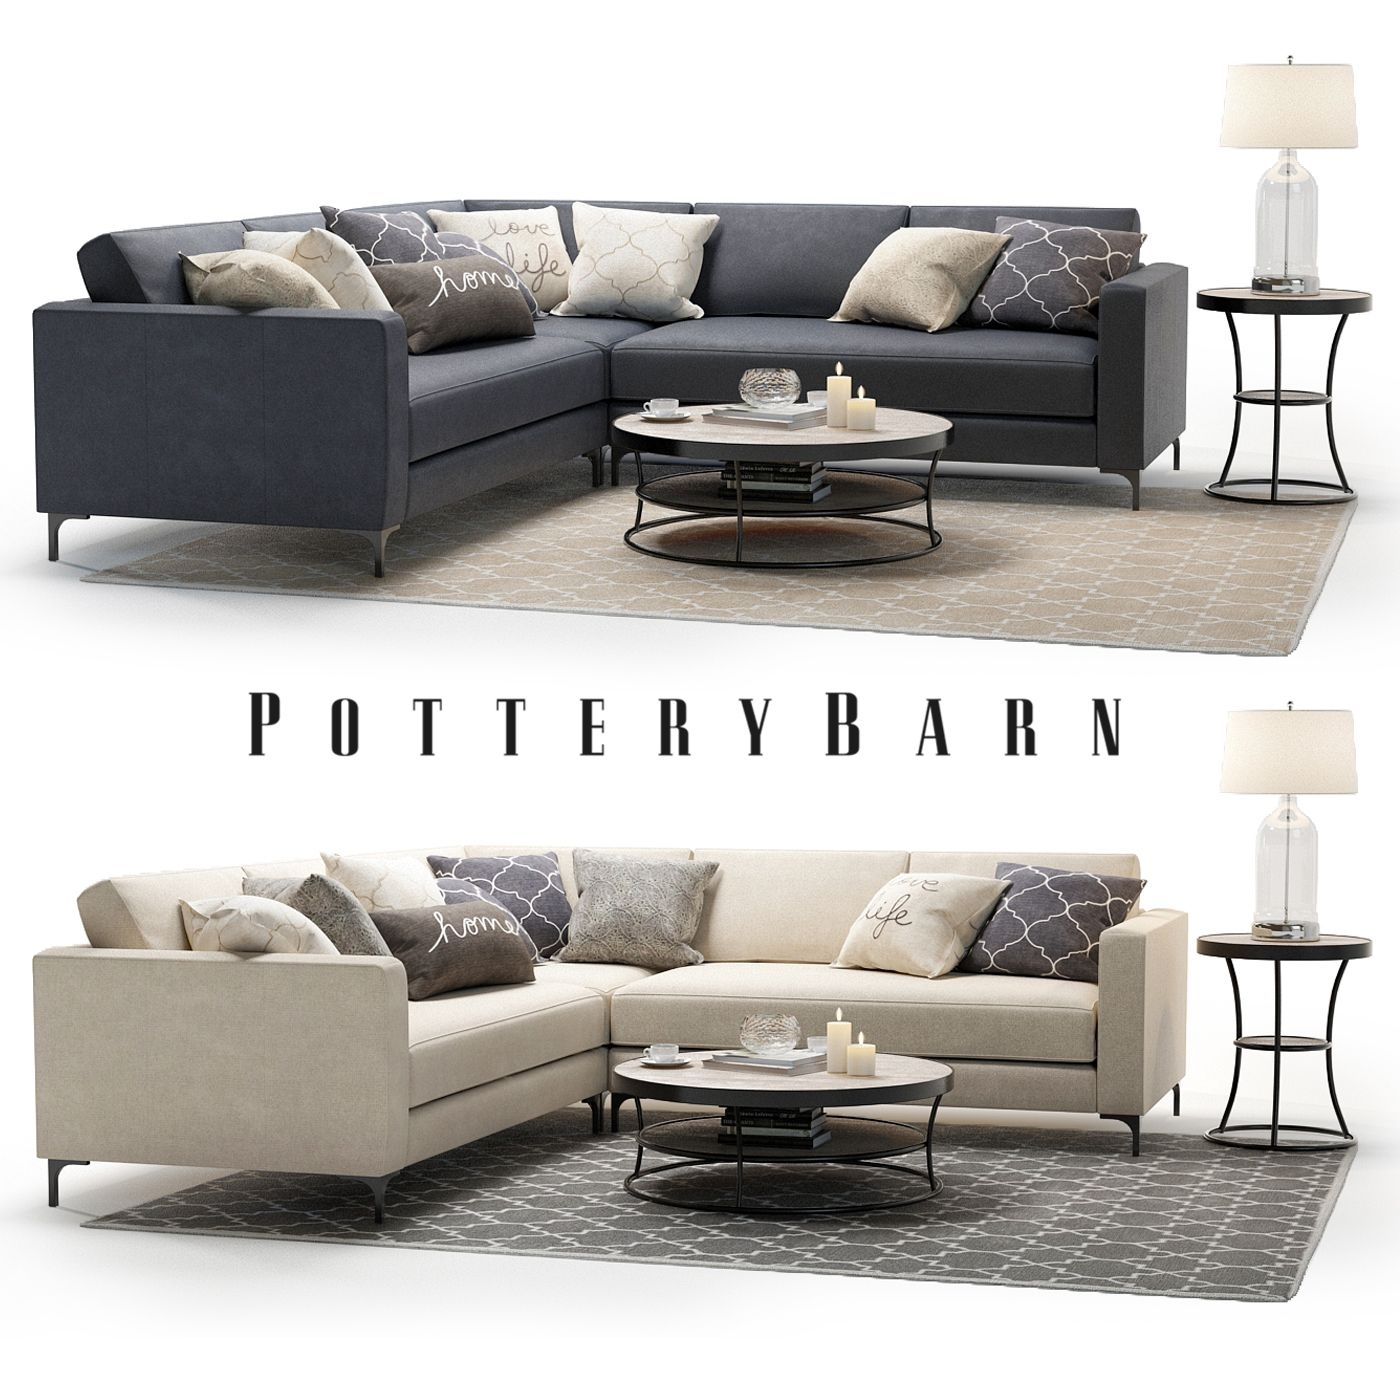 3D Model   Pottery Barn   Jake Sectional Sofa With Bartlett Intended For Pottery Barn Sectional Sofas (Photo 7 of 10)